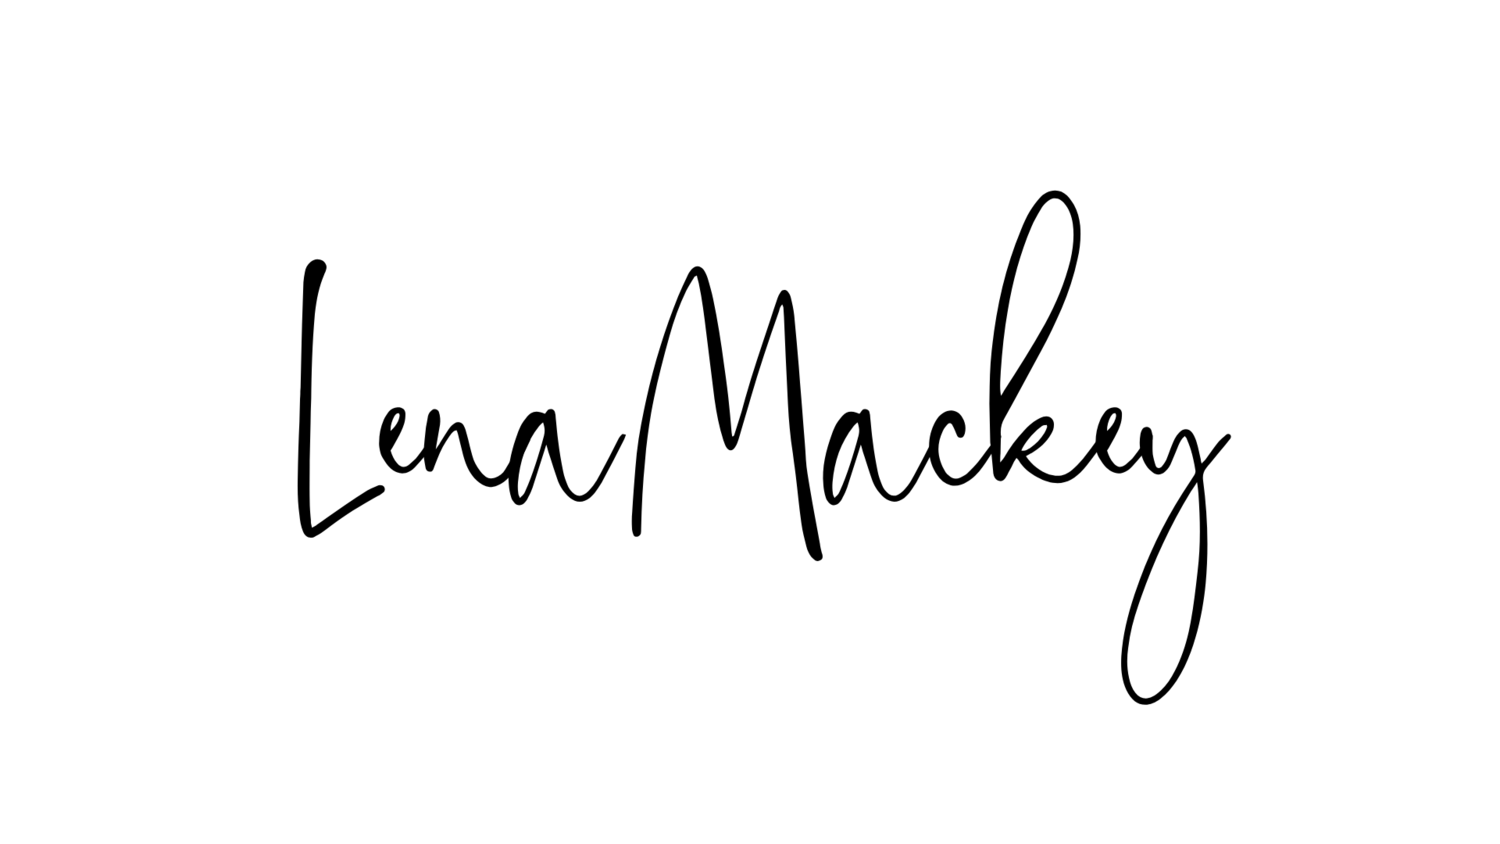 LENA MACKEY - DATING & RELATIONSHIP COACH